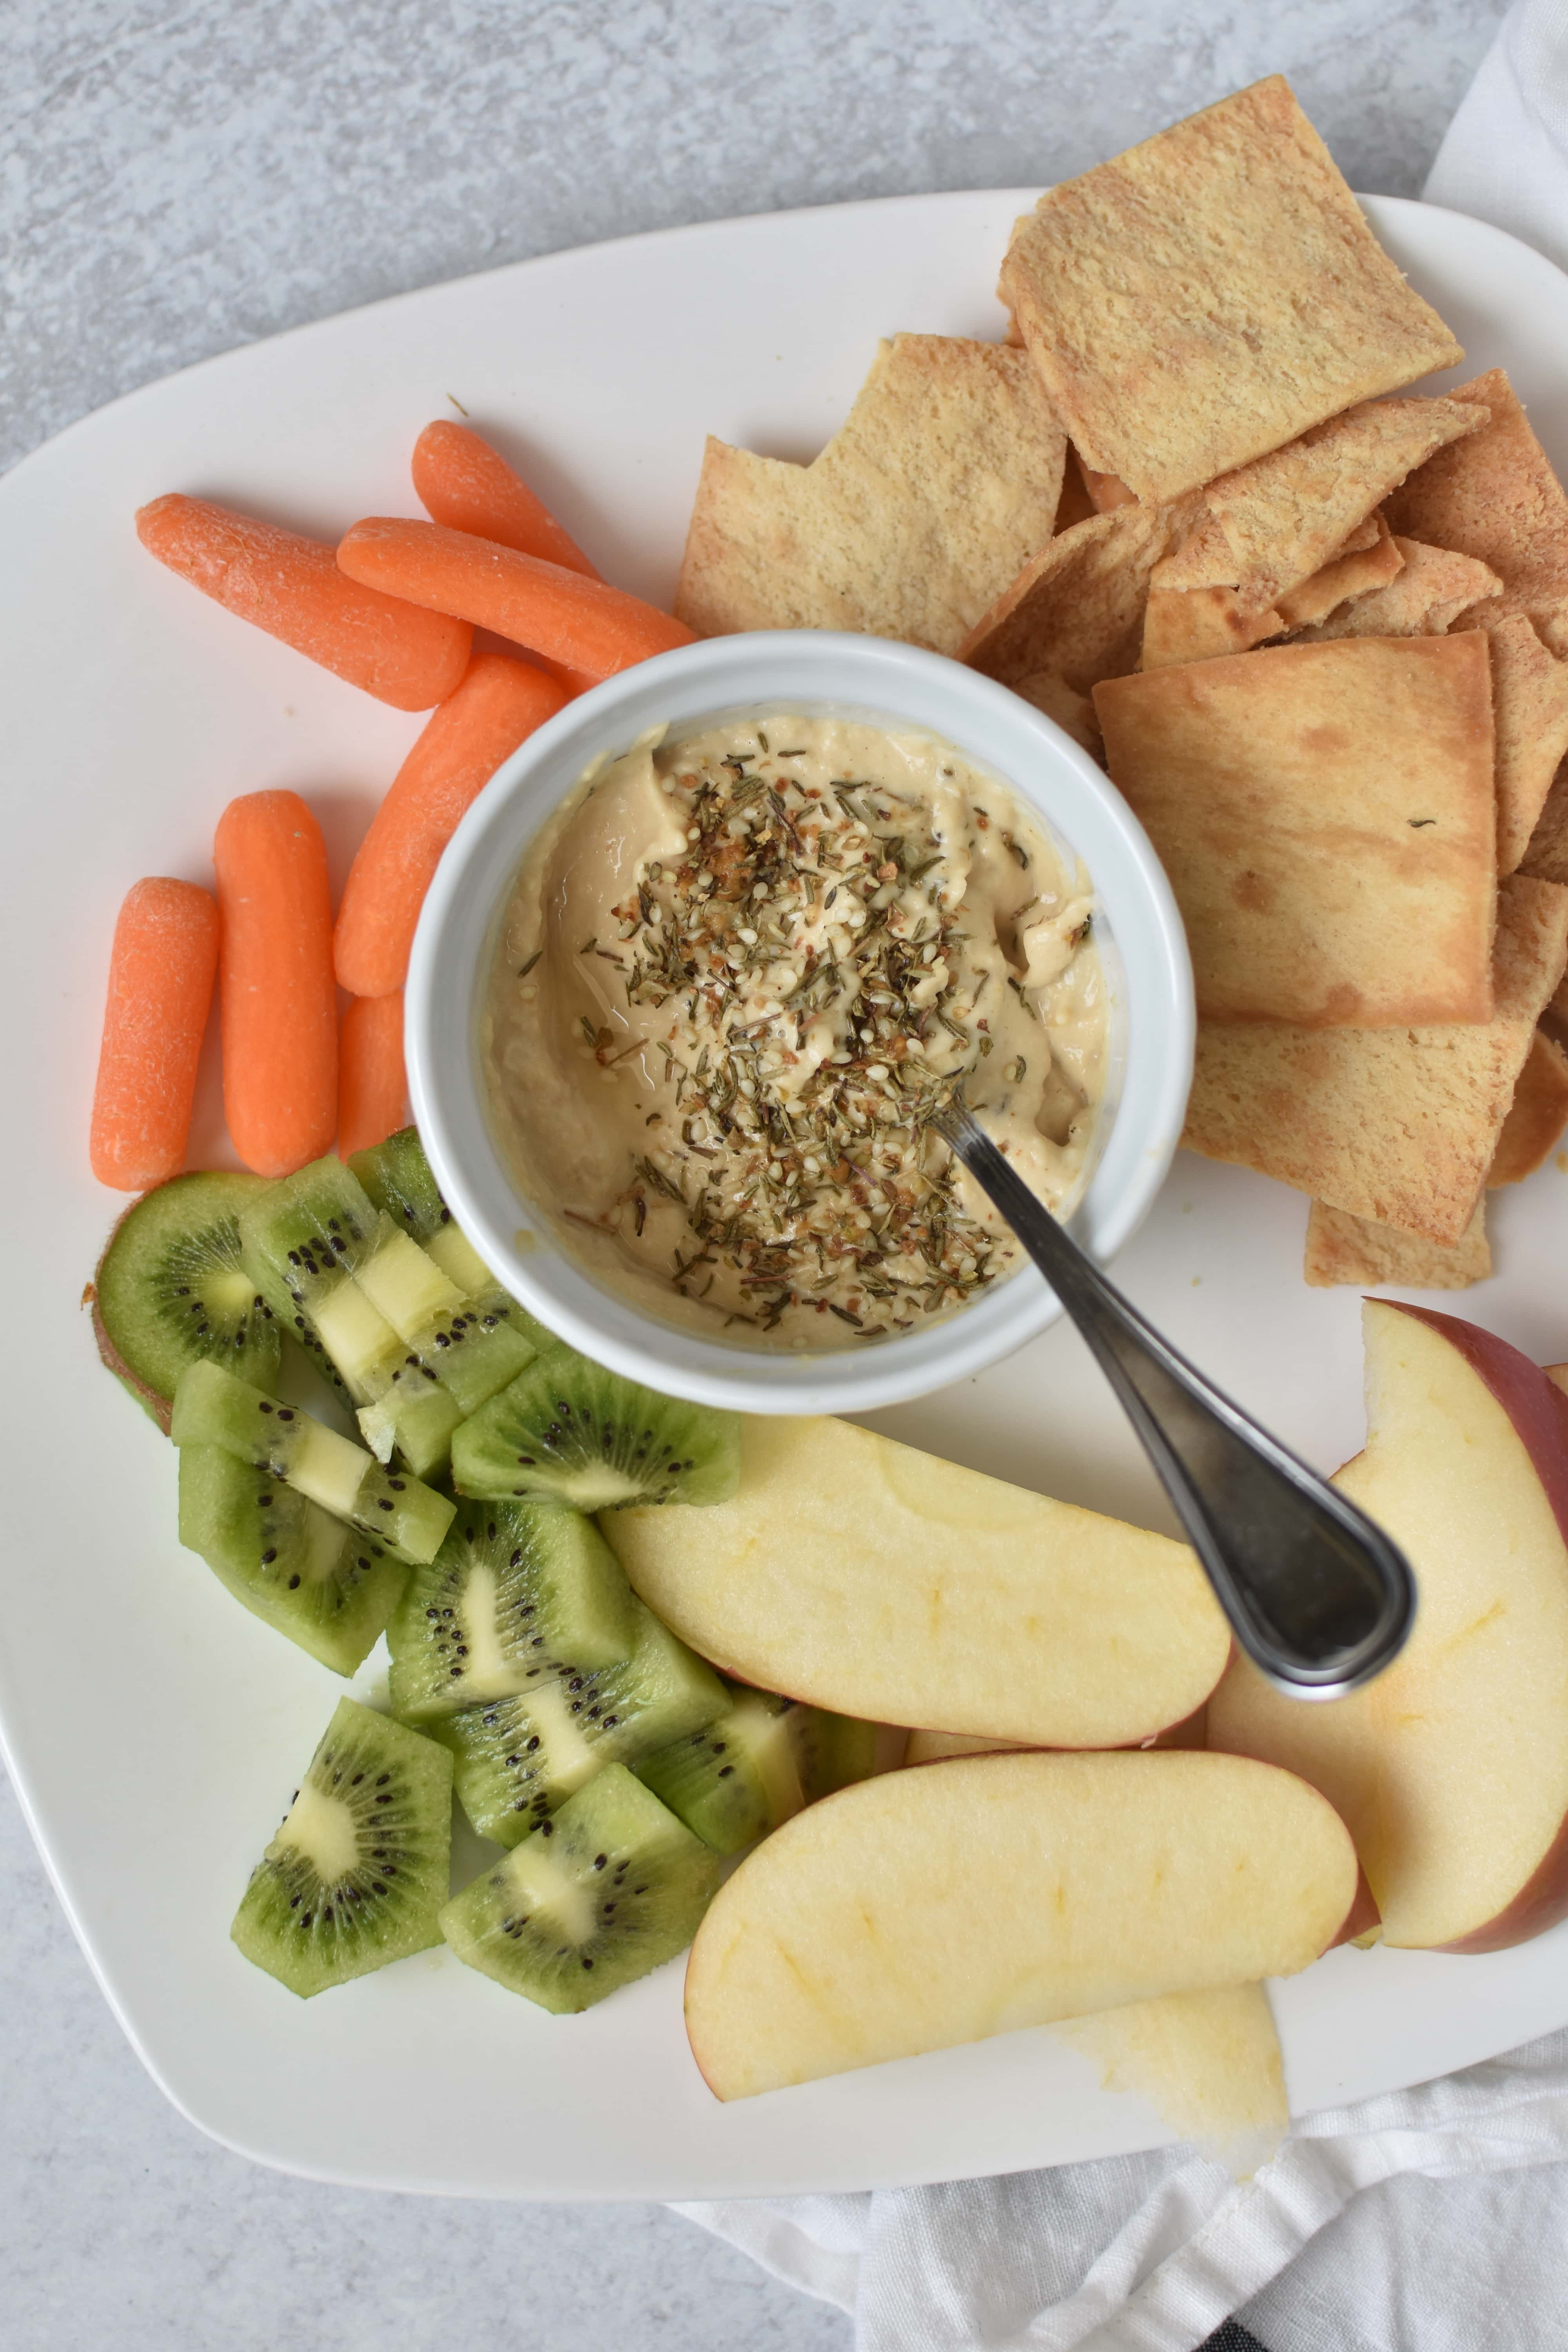 A bowl of hummus with vegetables on a white plate